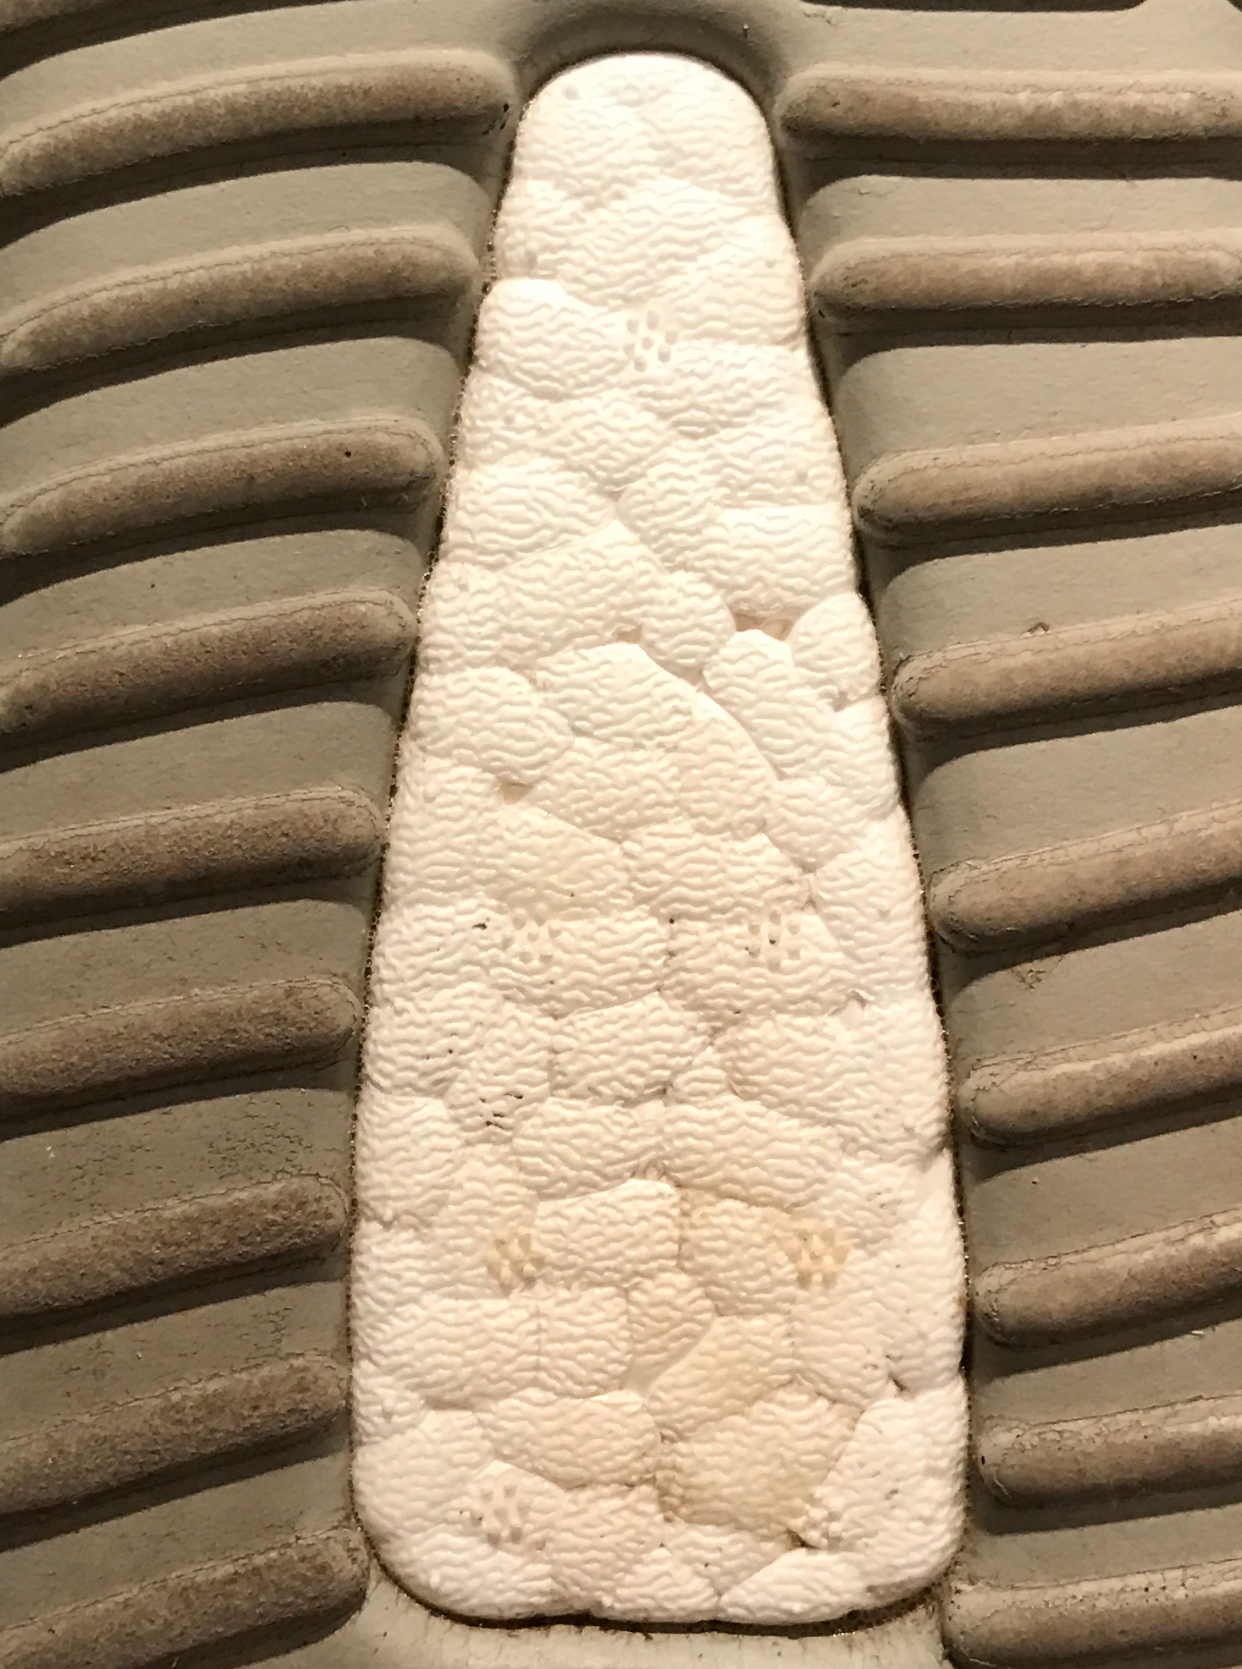 04909b1854b 5 Simple Tips to Legit Check Your Adidas Boost Technology In Your Yeez